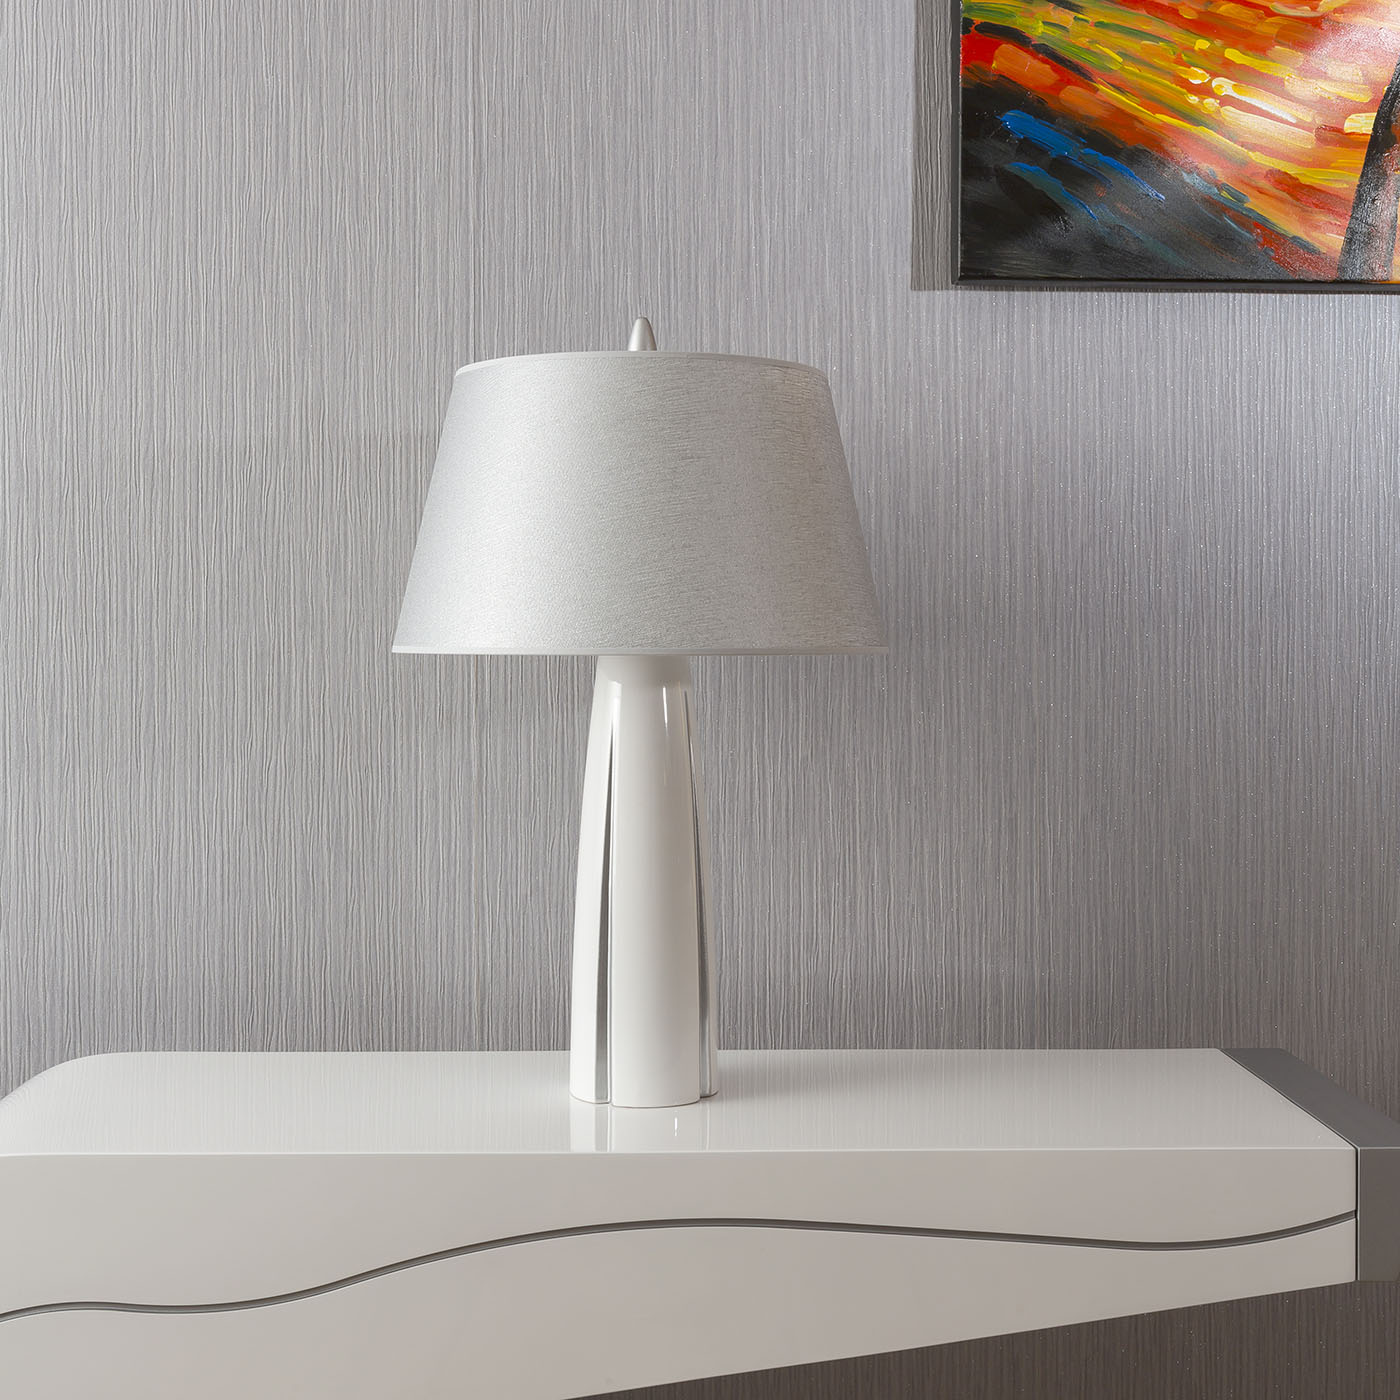 Tall Bedside Lamps Large Envy Lighting Modern Tall Table Bedside Lamp